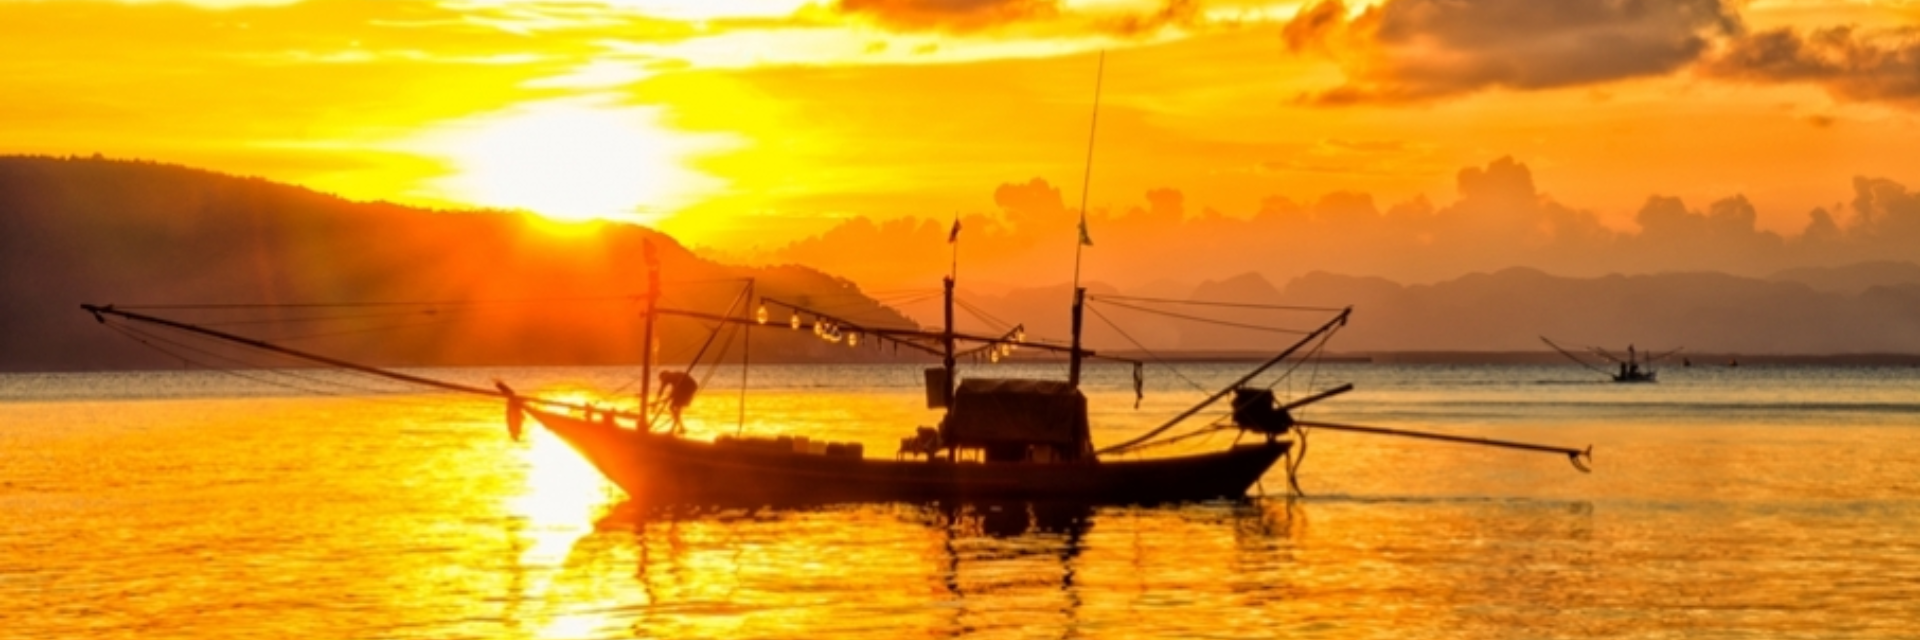 CHUMPHON : HOMESTAY AND THE FISHERMEN'S LIFESTYLE.